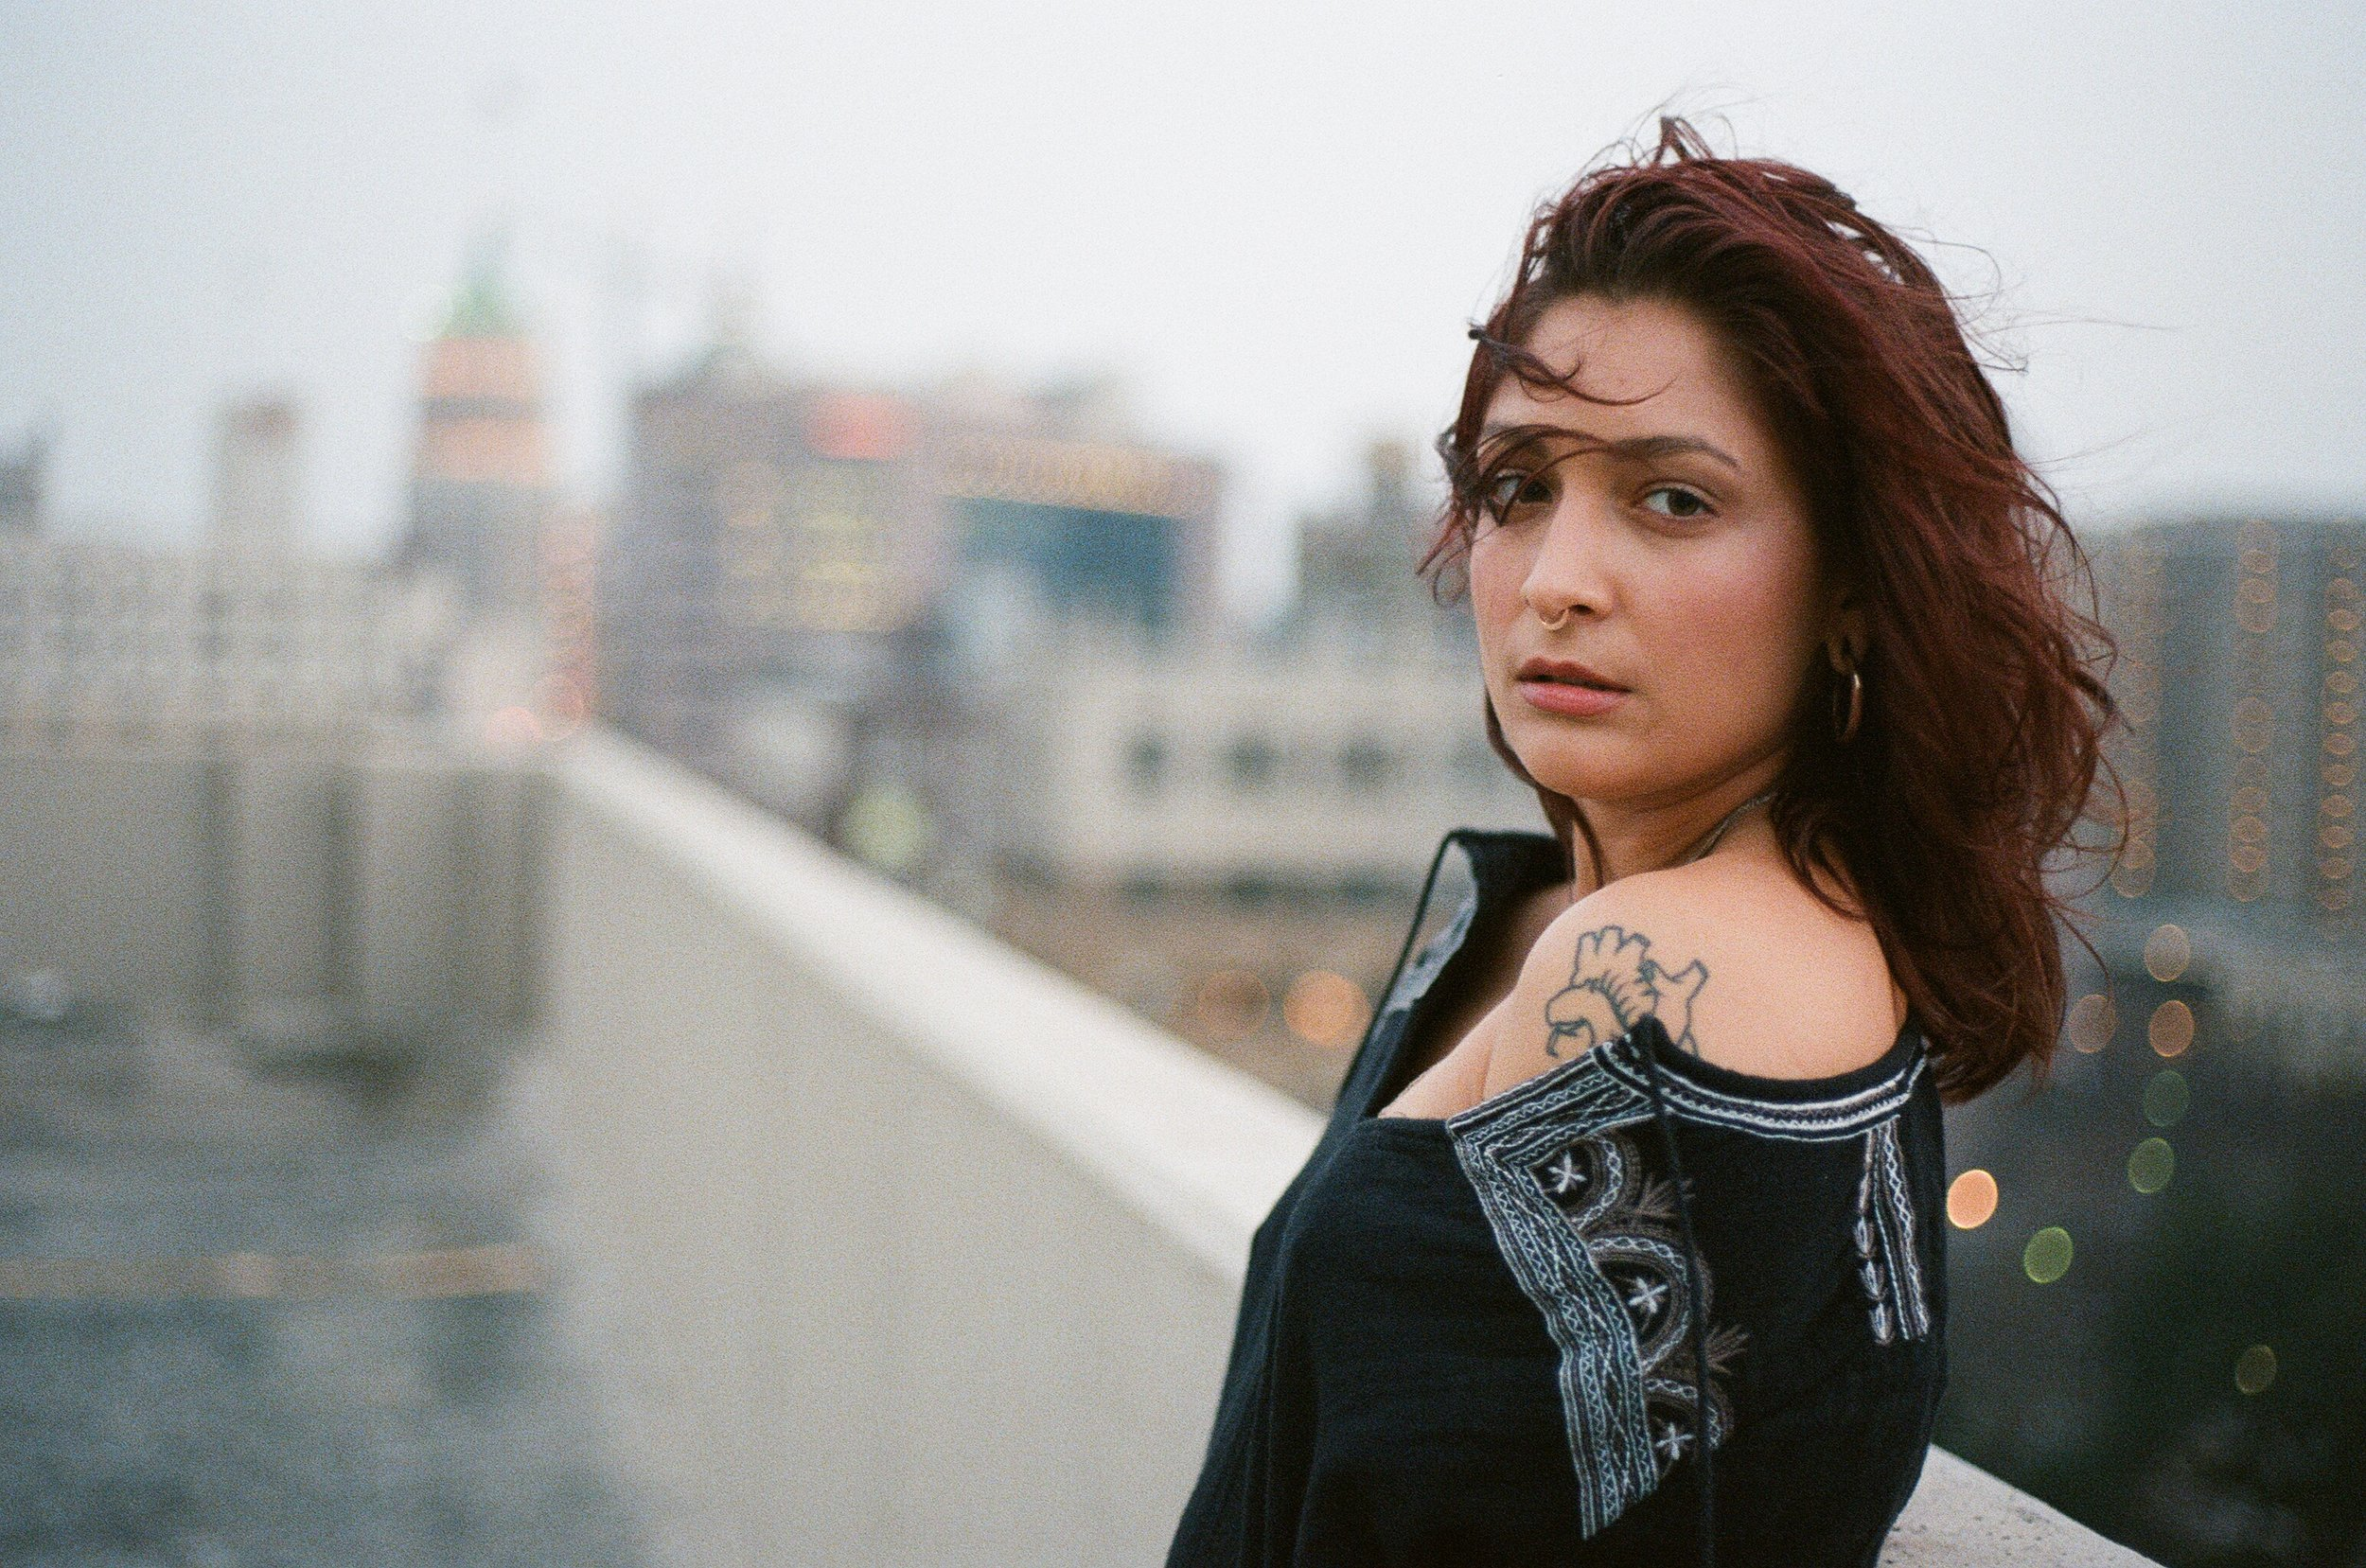 Alexus on 35mm - click for more